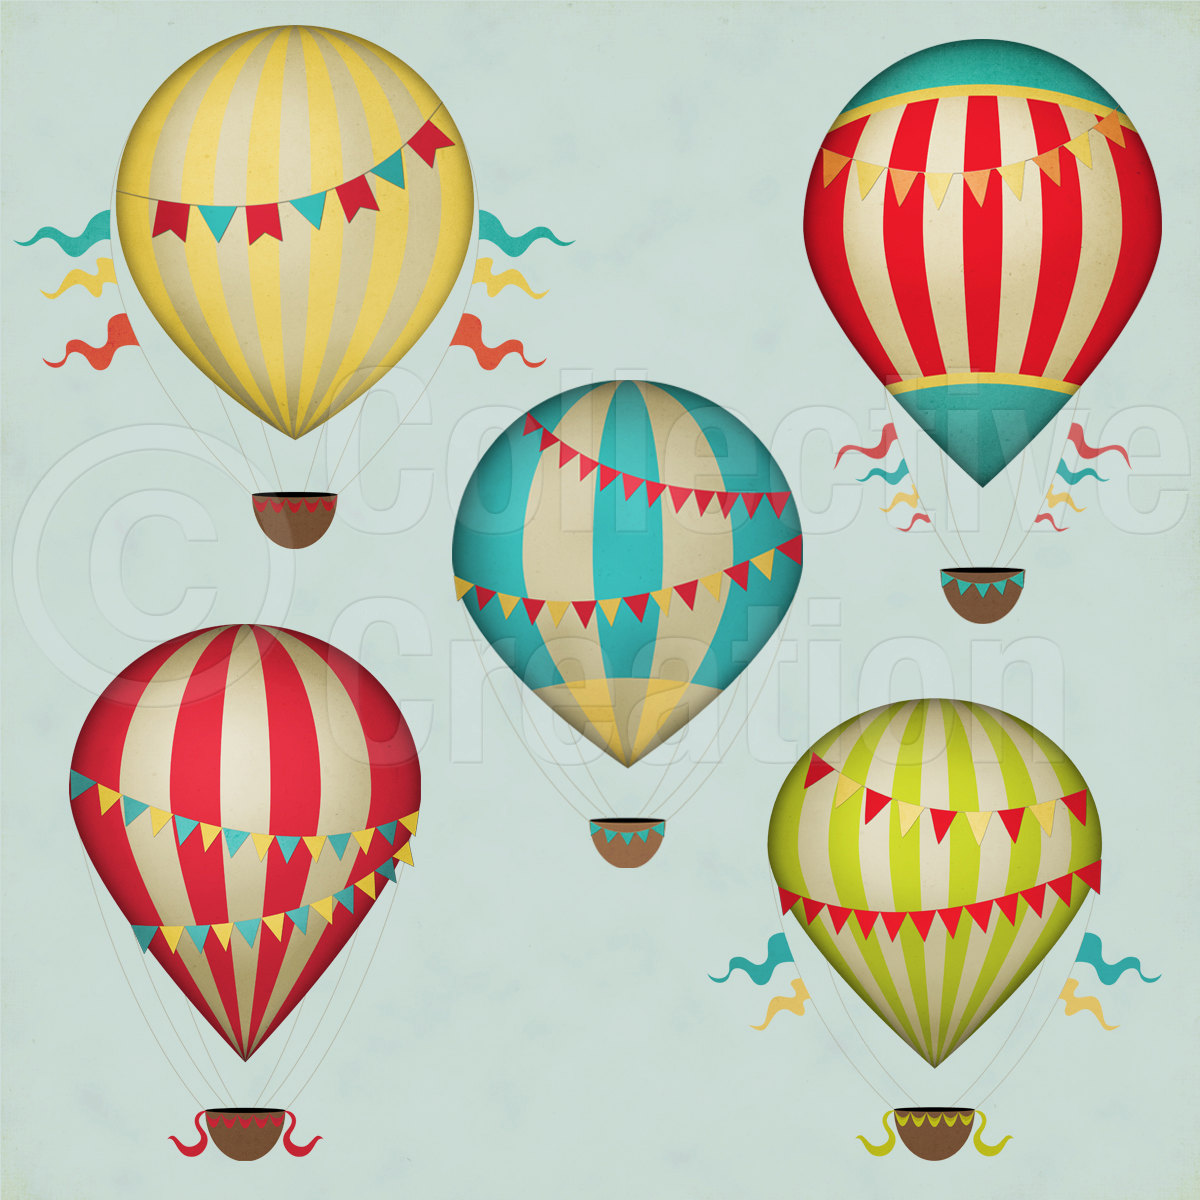 Free download Vintage Hot Air Balloons Digital Clip Art by.